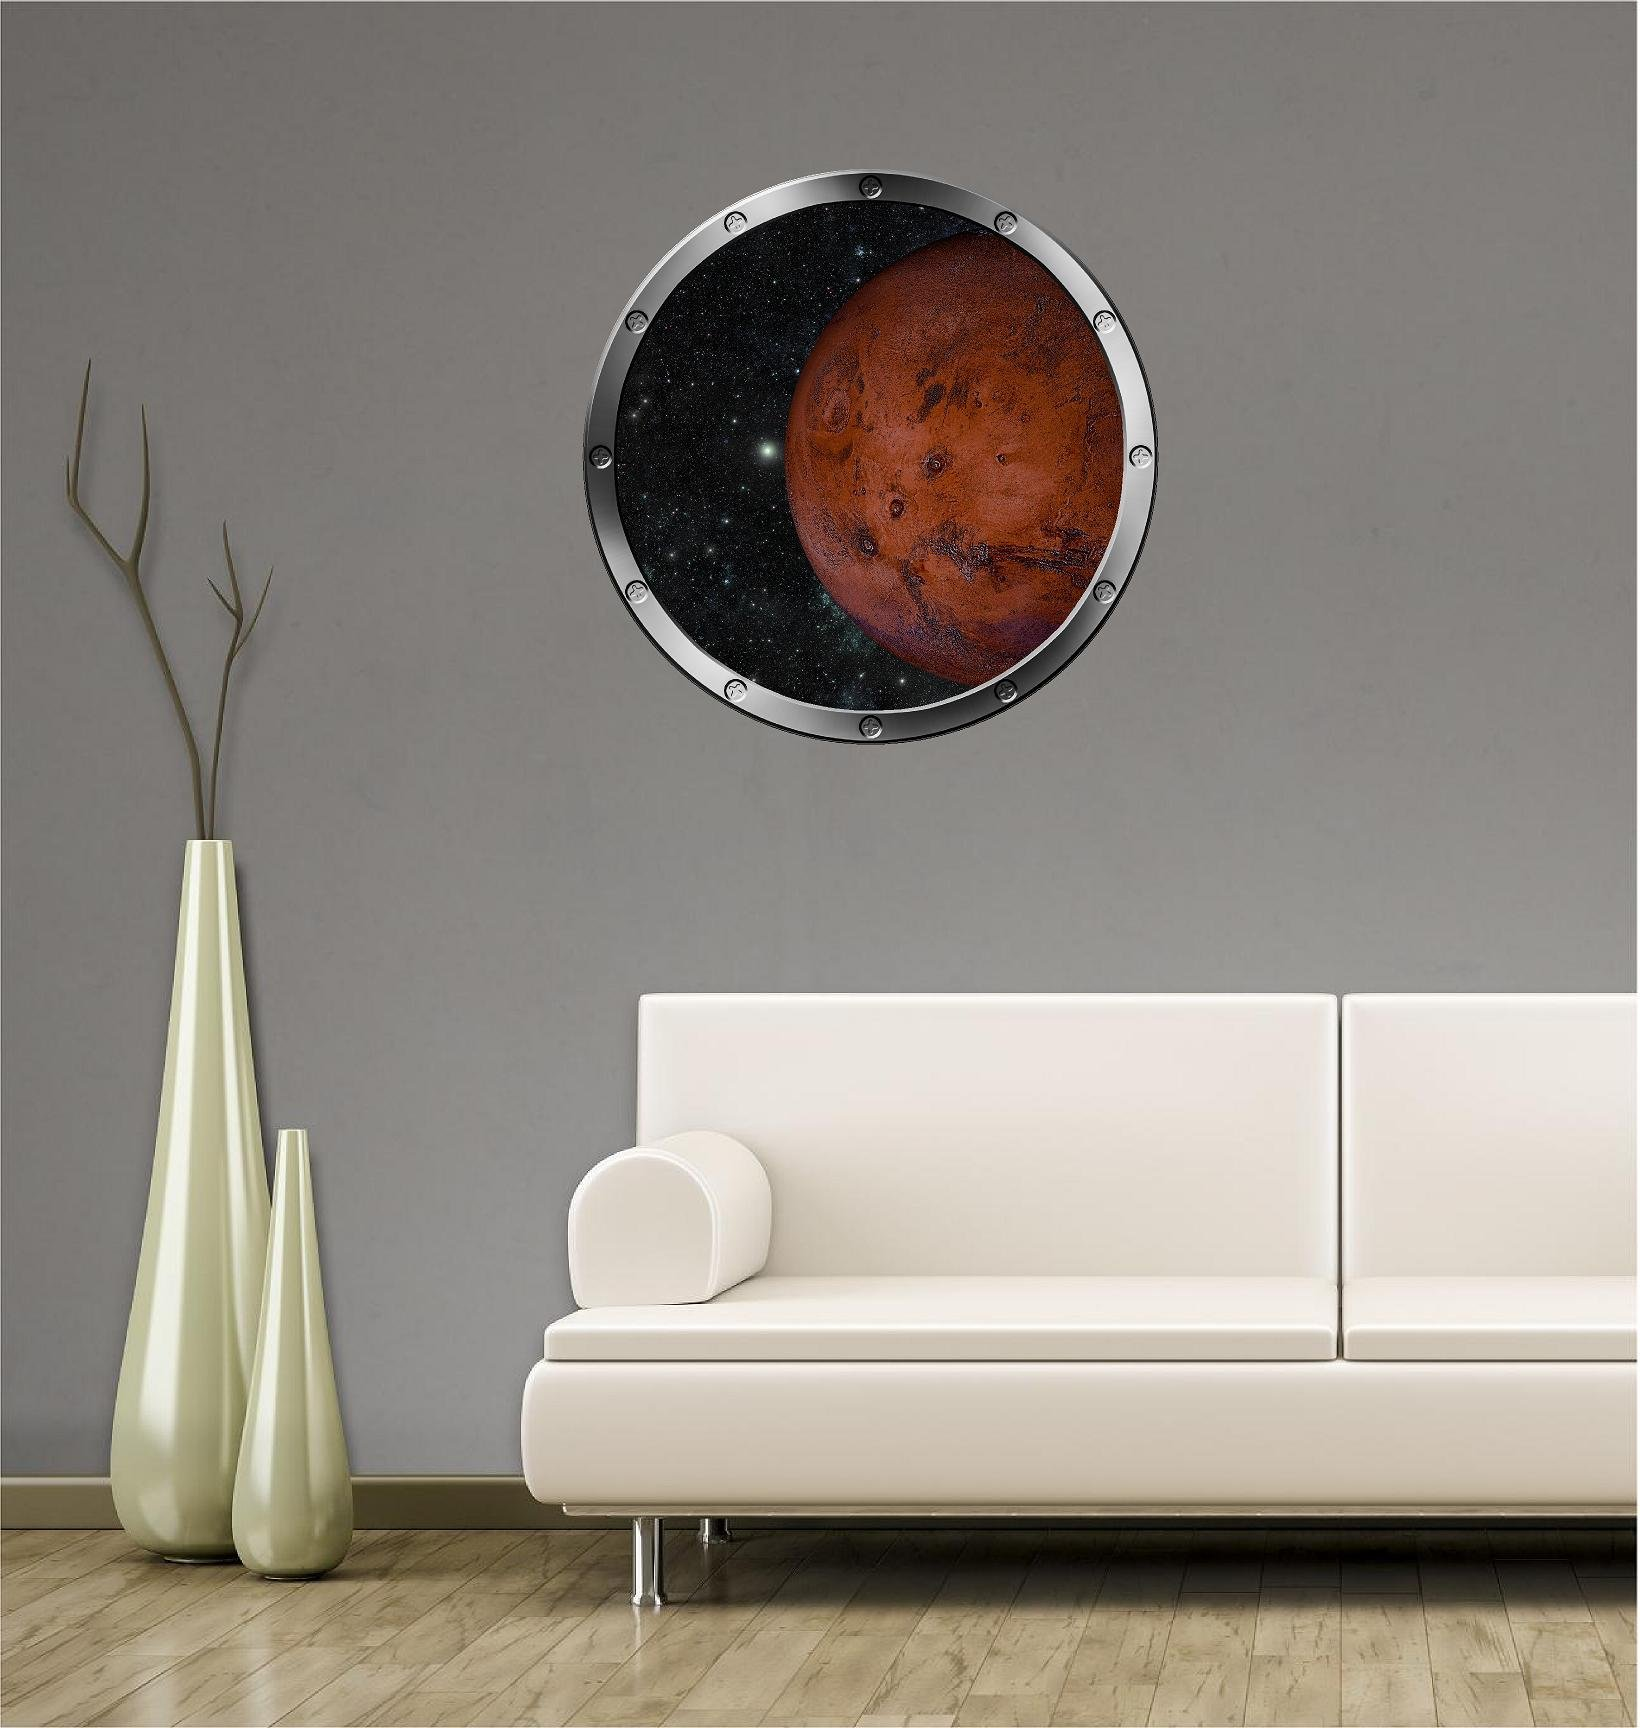 24'' Porthole Instant Outer Space Ship Window View PLANET MARS #1 SILVER Wall Decal Kids Sticker Room Home Art Décor Graphic MEDIUM